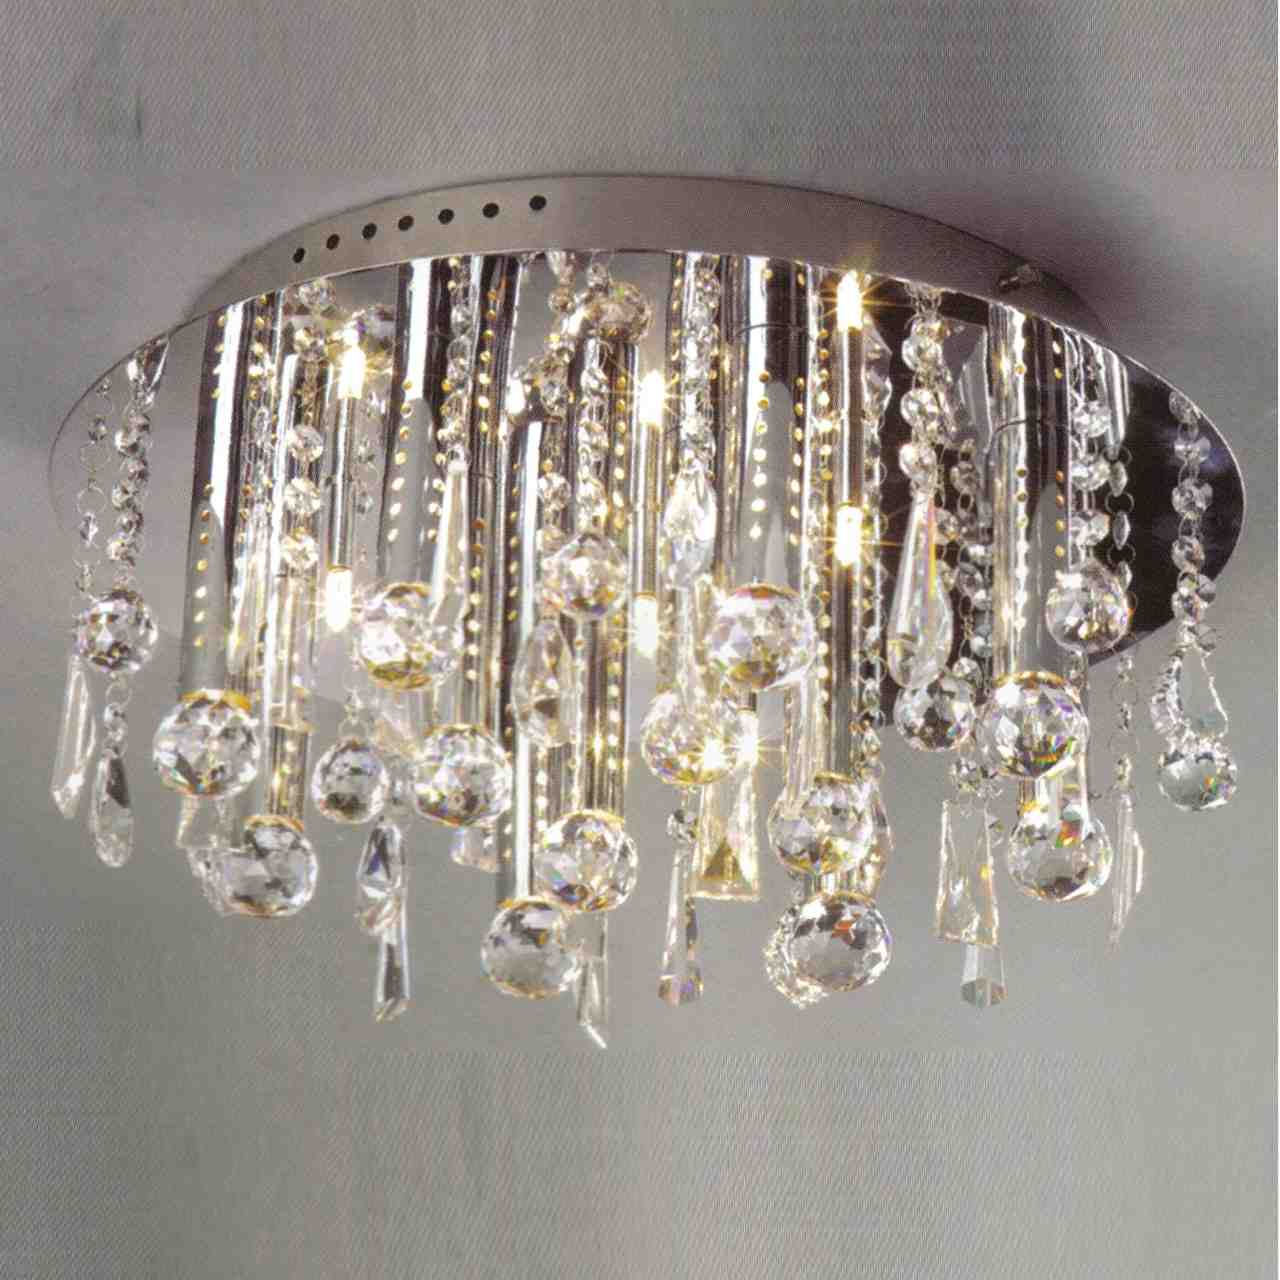 Brizzo lighting stores 14 miraggio modern crystal flush mount picture of 14 miraggio modern crystal flush mount round chandelier polished chrome 12 lights aloadofball Image collections